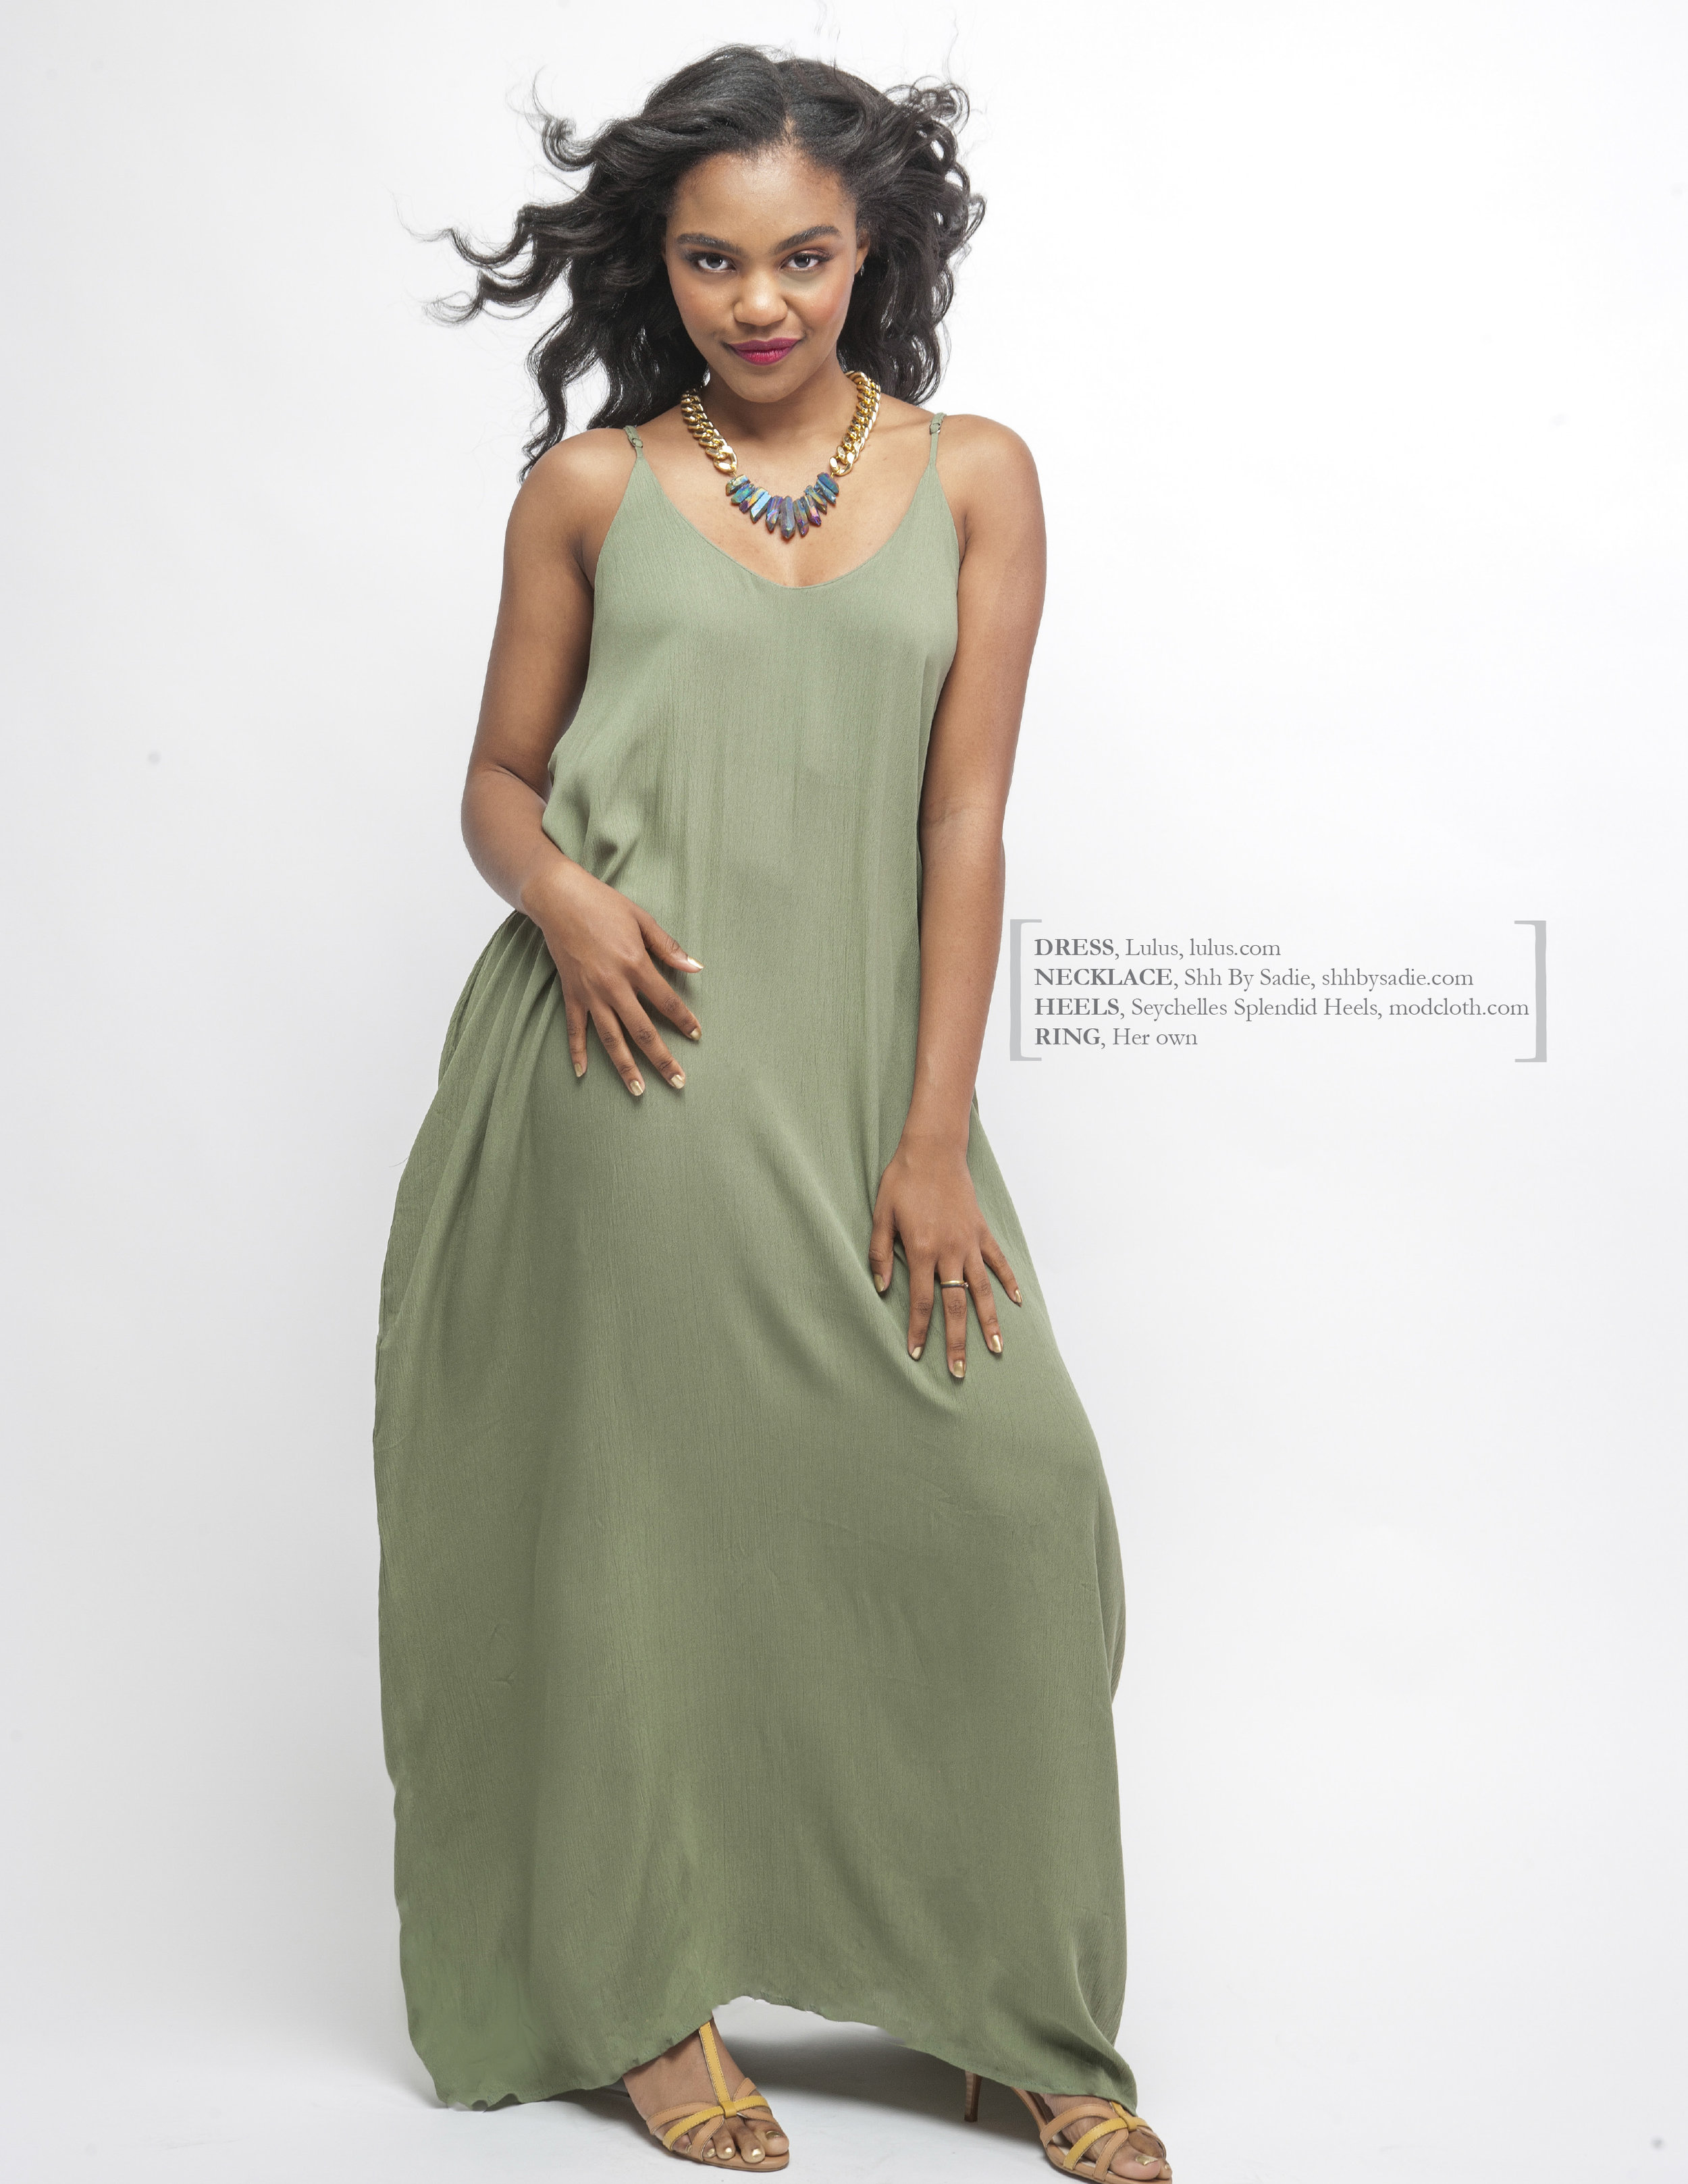 china anne mcclain Cover Story.jpg